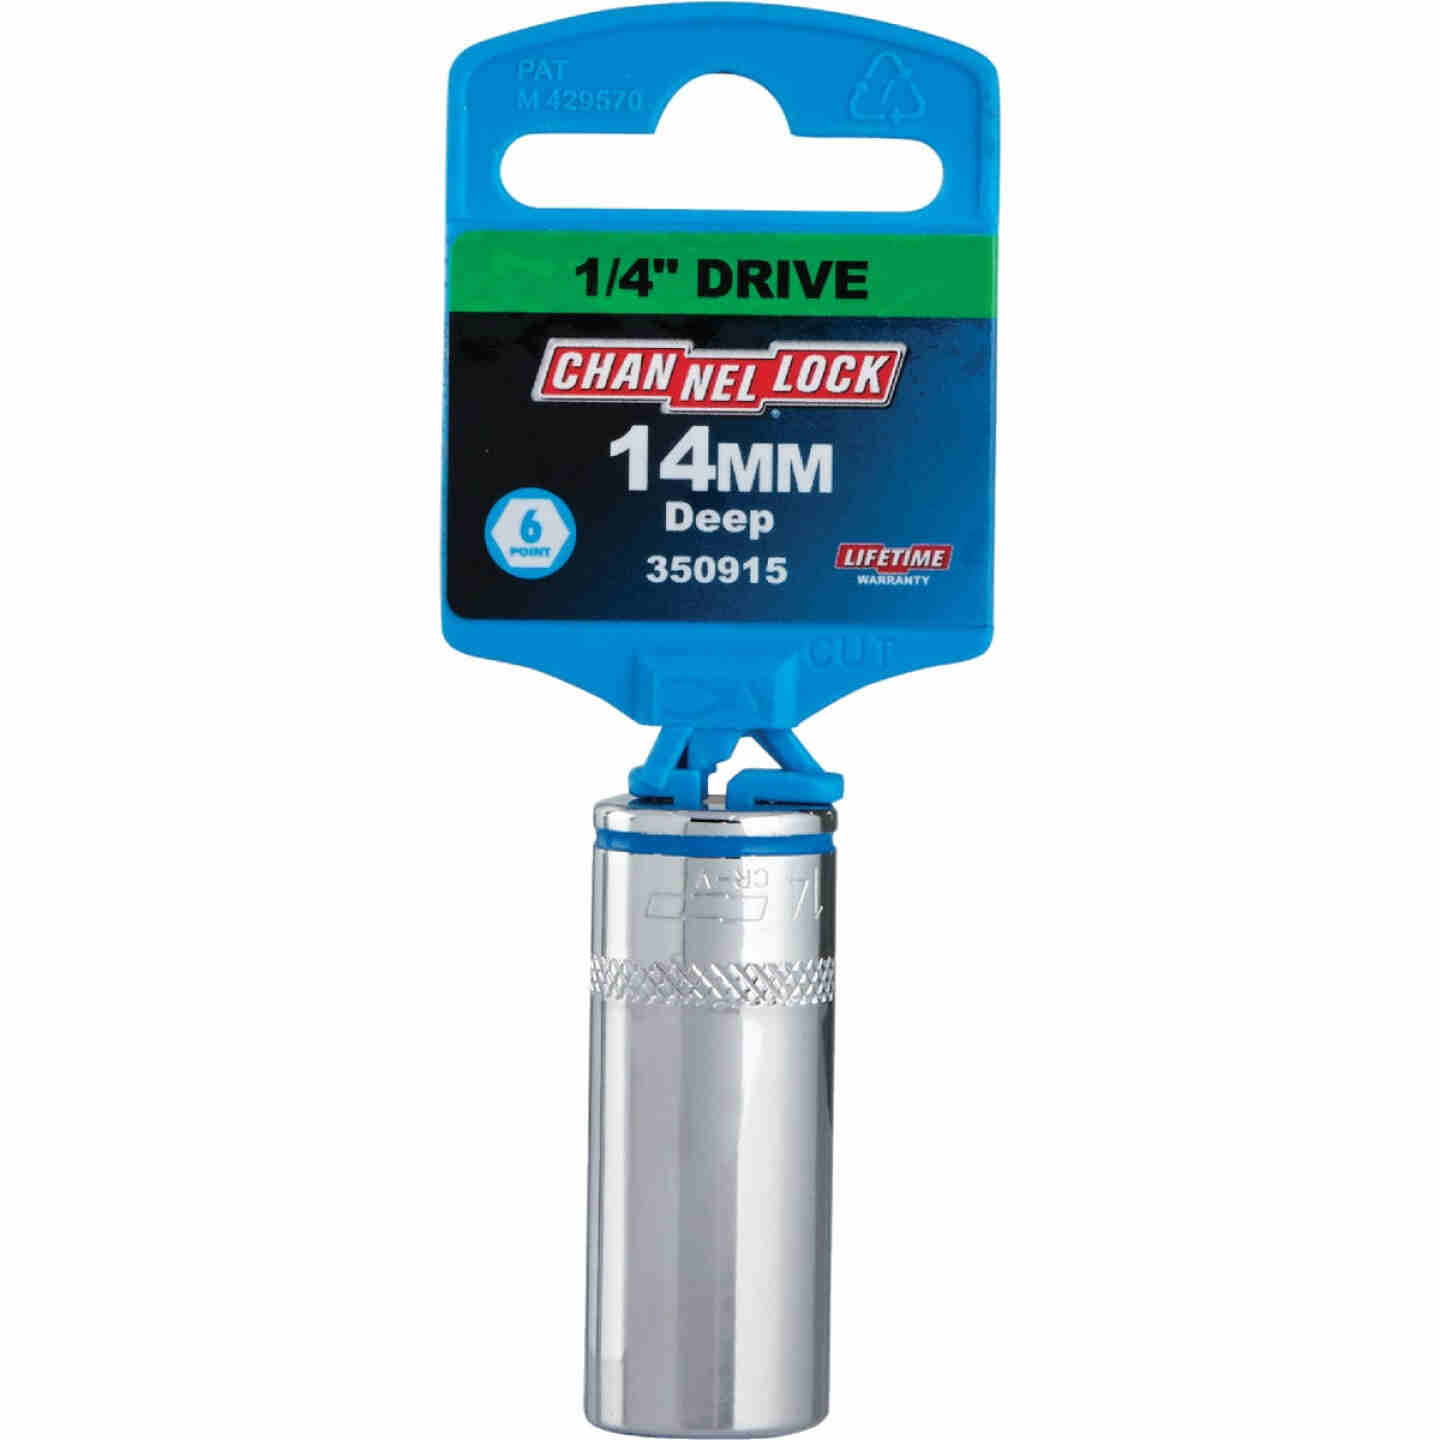 Channellock 1/4 In. Drive 14 mm 6-Point Deep Metric Socket Image 2